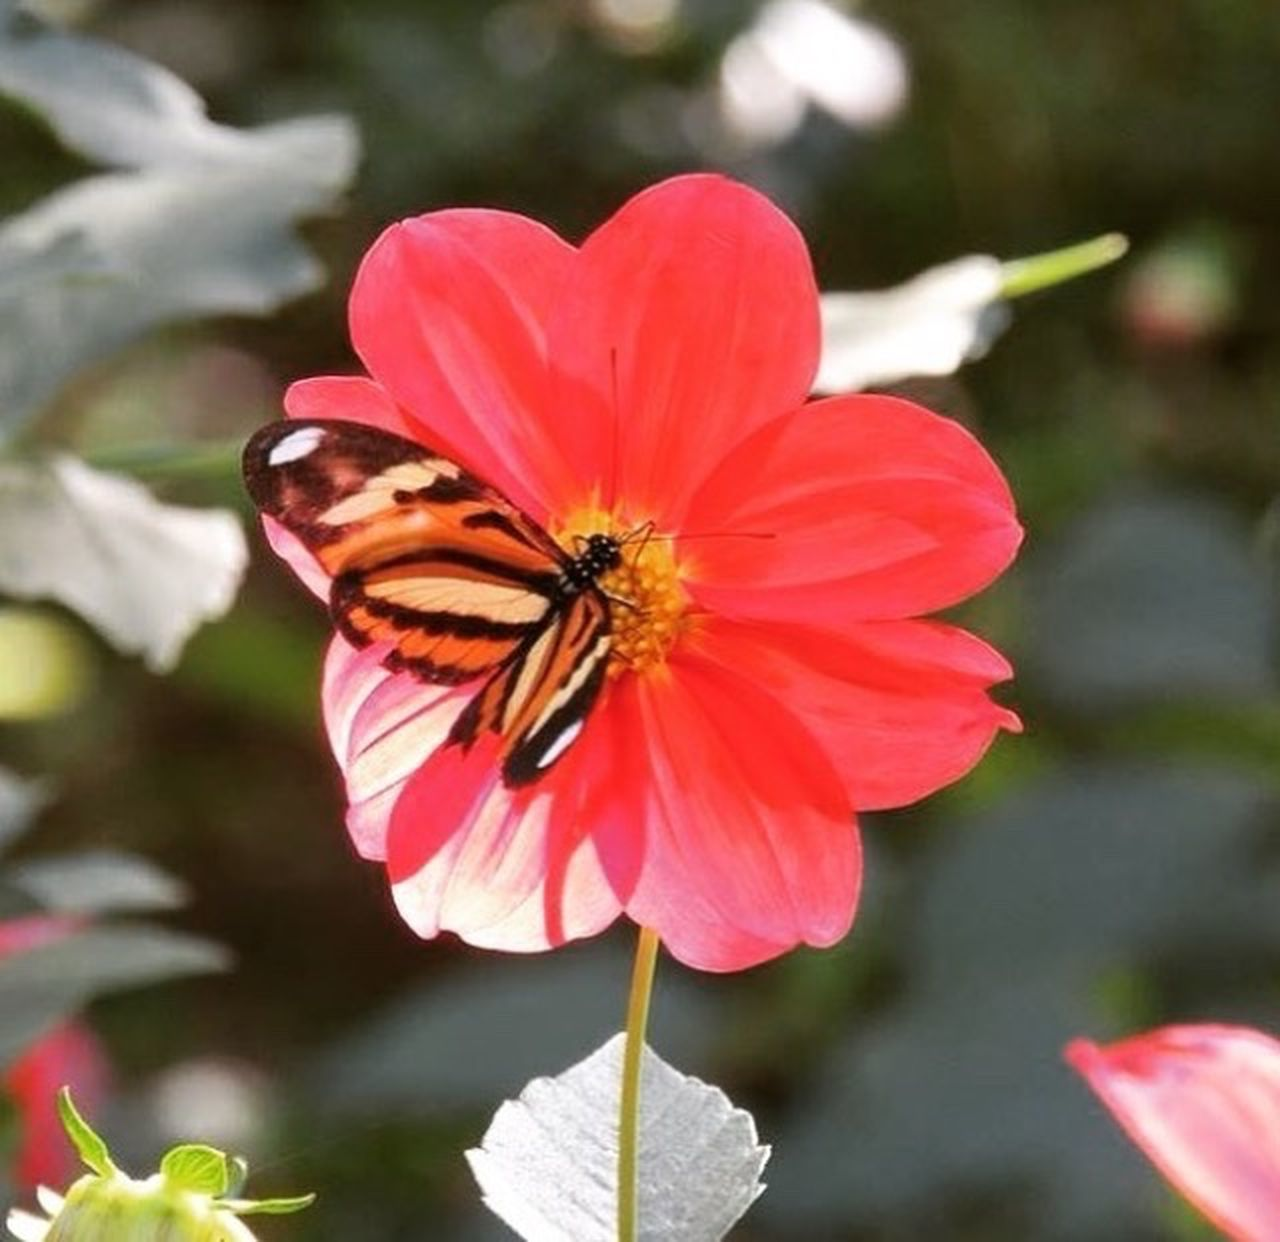 flower, fragility, petal, insect, one animal, nature, day, animal themes, focus on foreground, outdoors, freshness, growth, flower head, beauty in nature, animals in the wild, close-up, plant, pink color, no people, animal wildlife